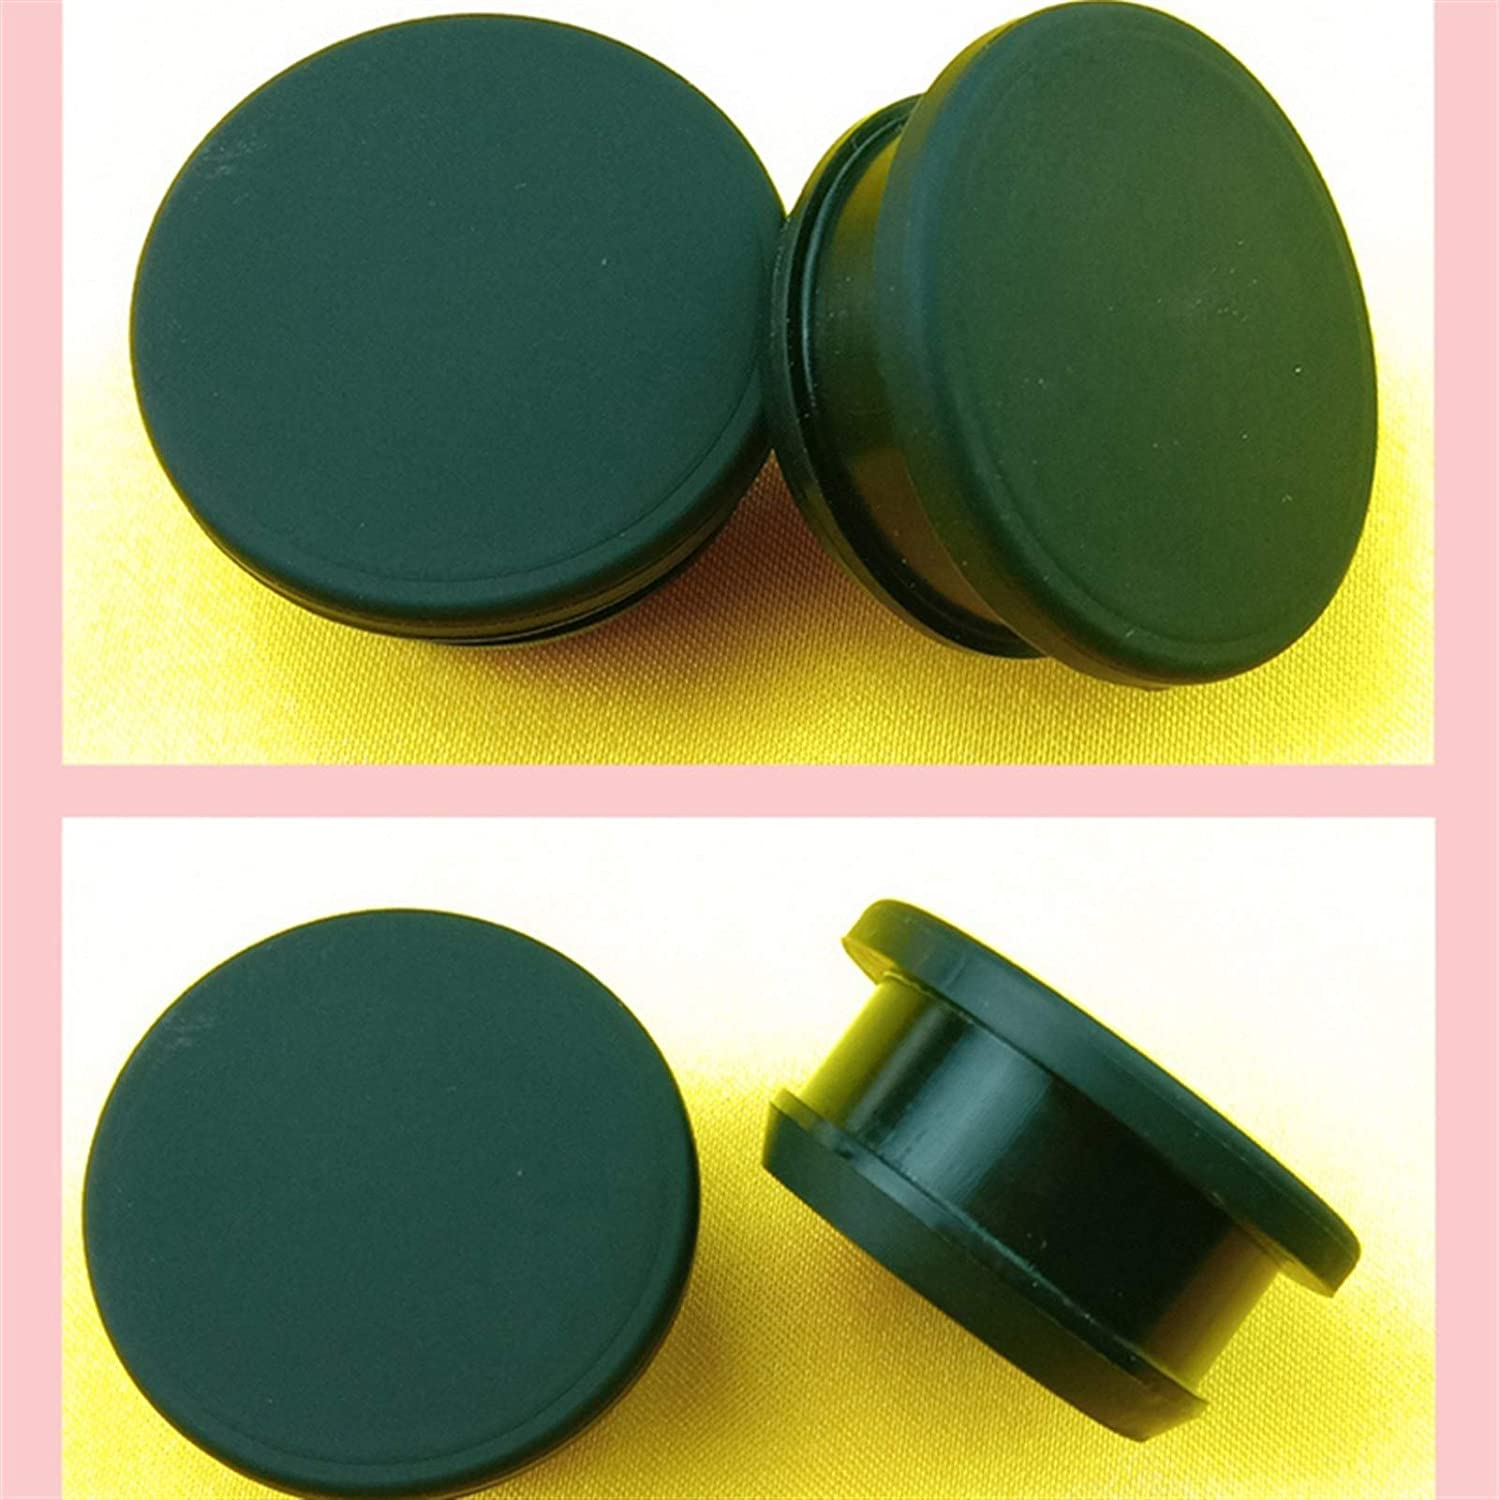 10pcs Color : Black, Size : A 7mm XIARUI Gasket 2.5-30mm Silicone Seal End Caps Round Rubber Gasket Stopper for Alloy Plate Heat Resistance Water Sink Hole Plug Seal Gasket Durable in use.